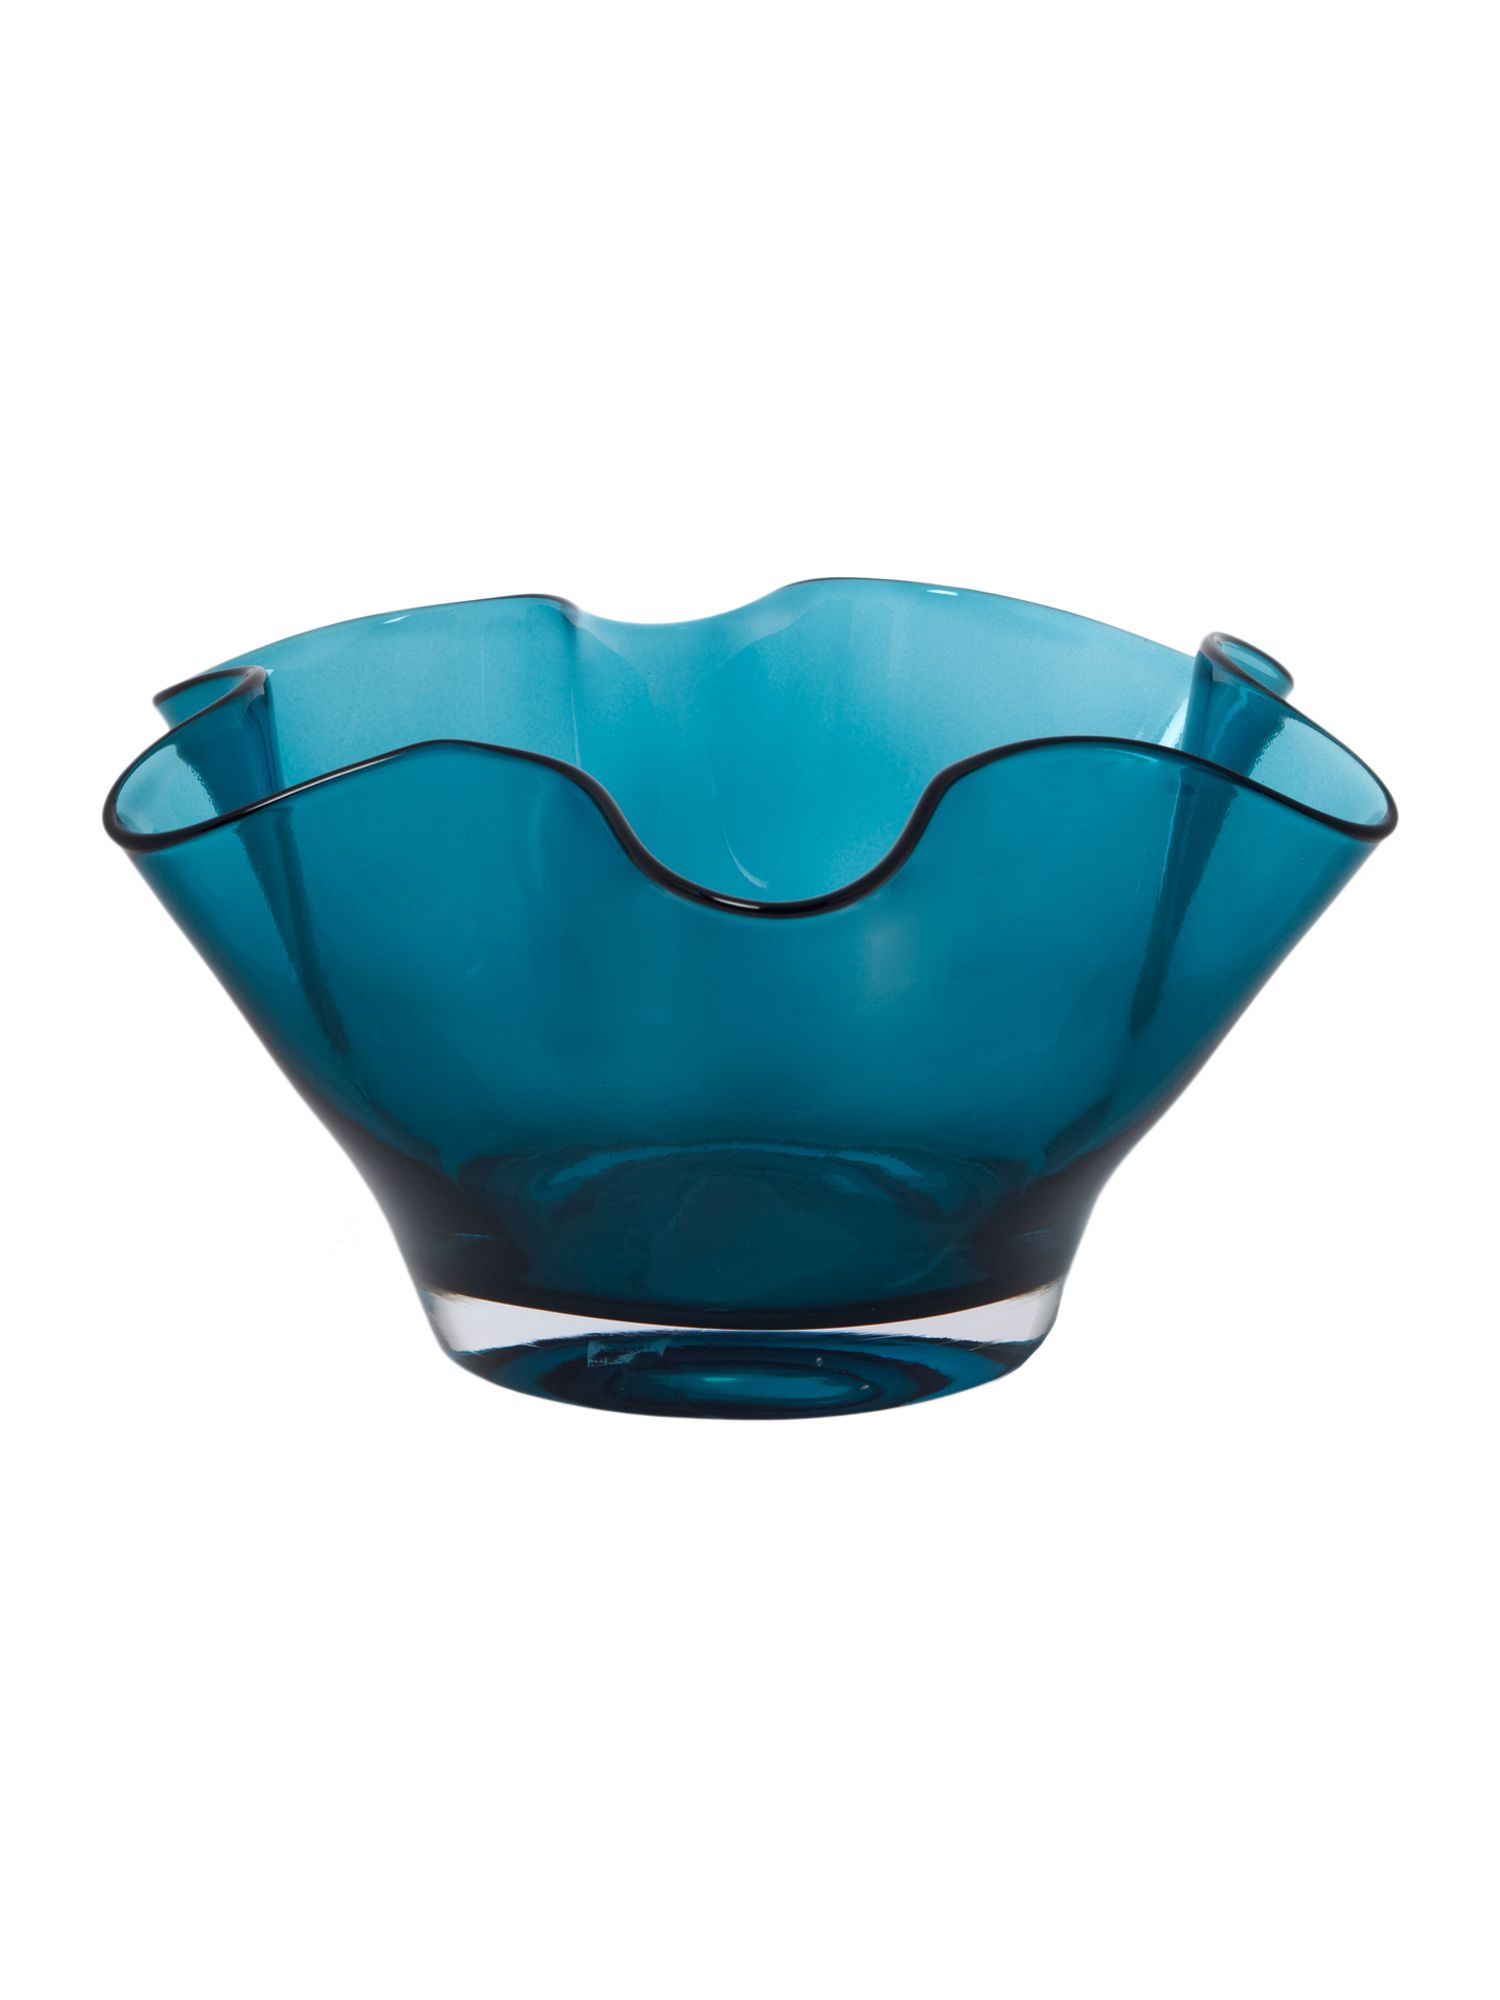 Teal handkerchief bowl